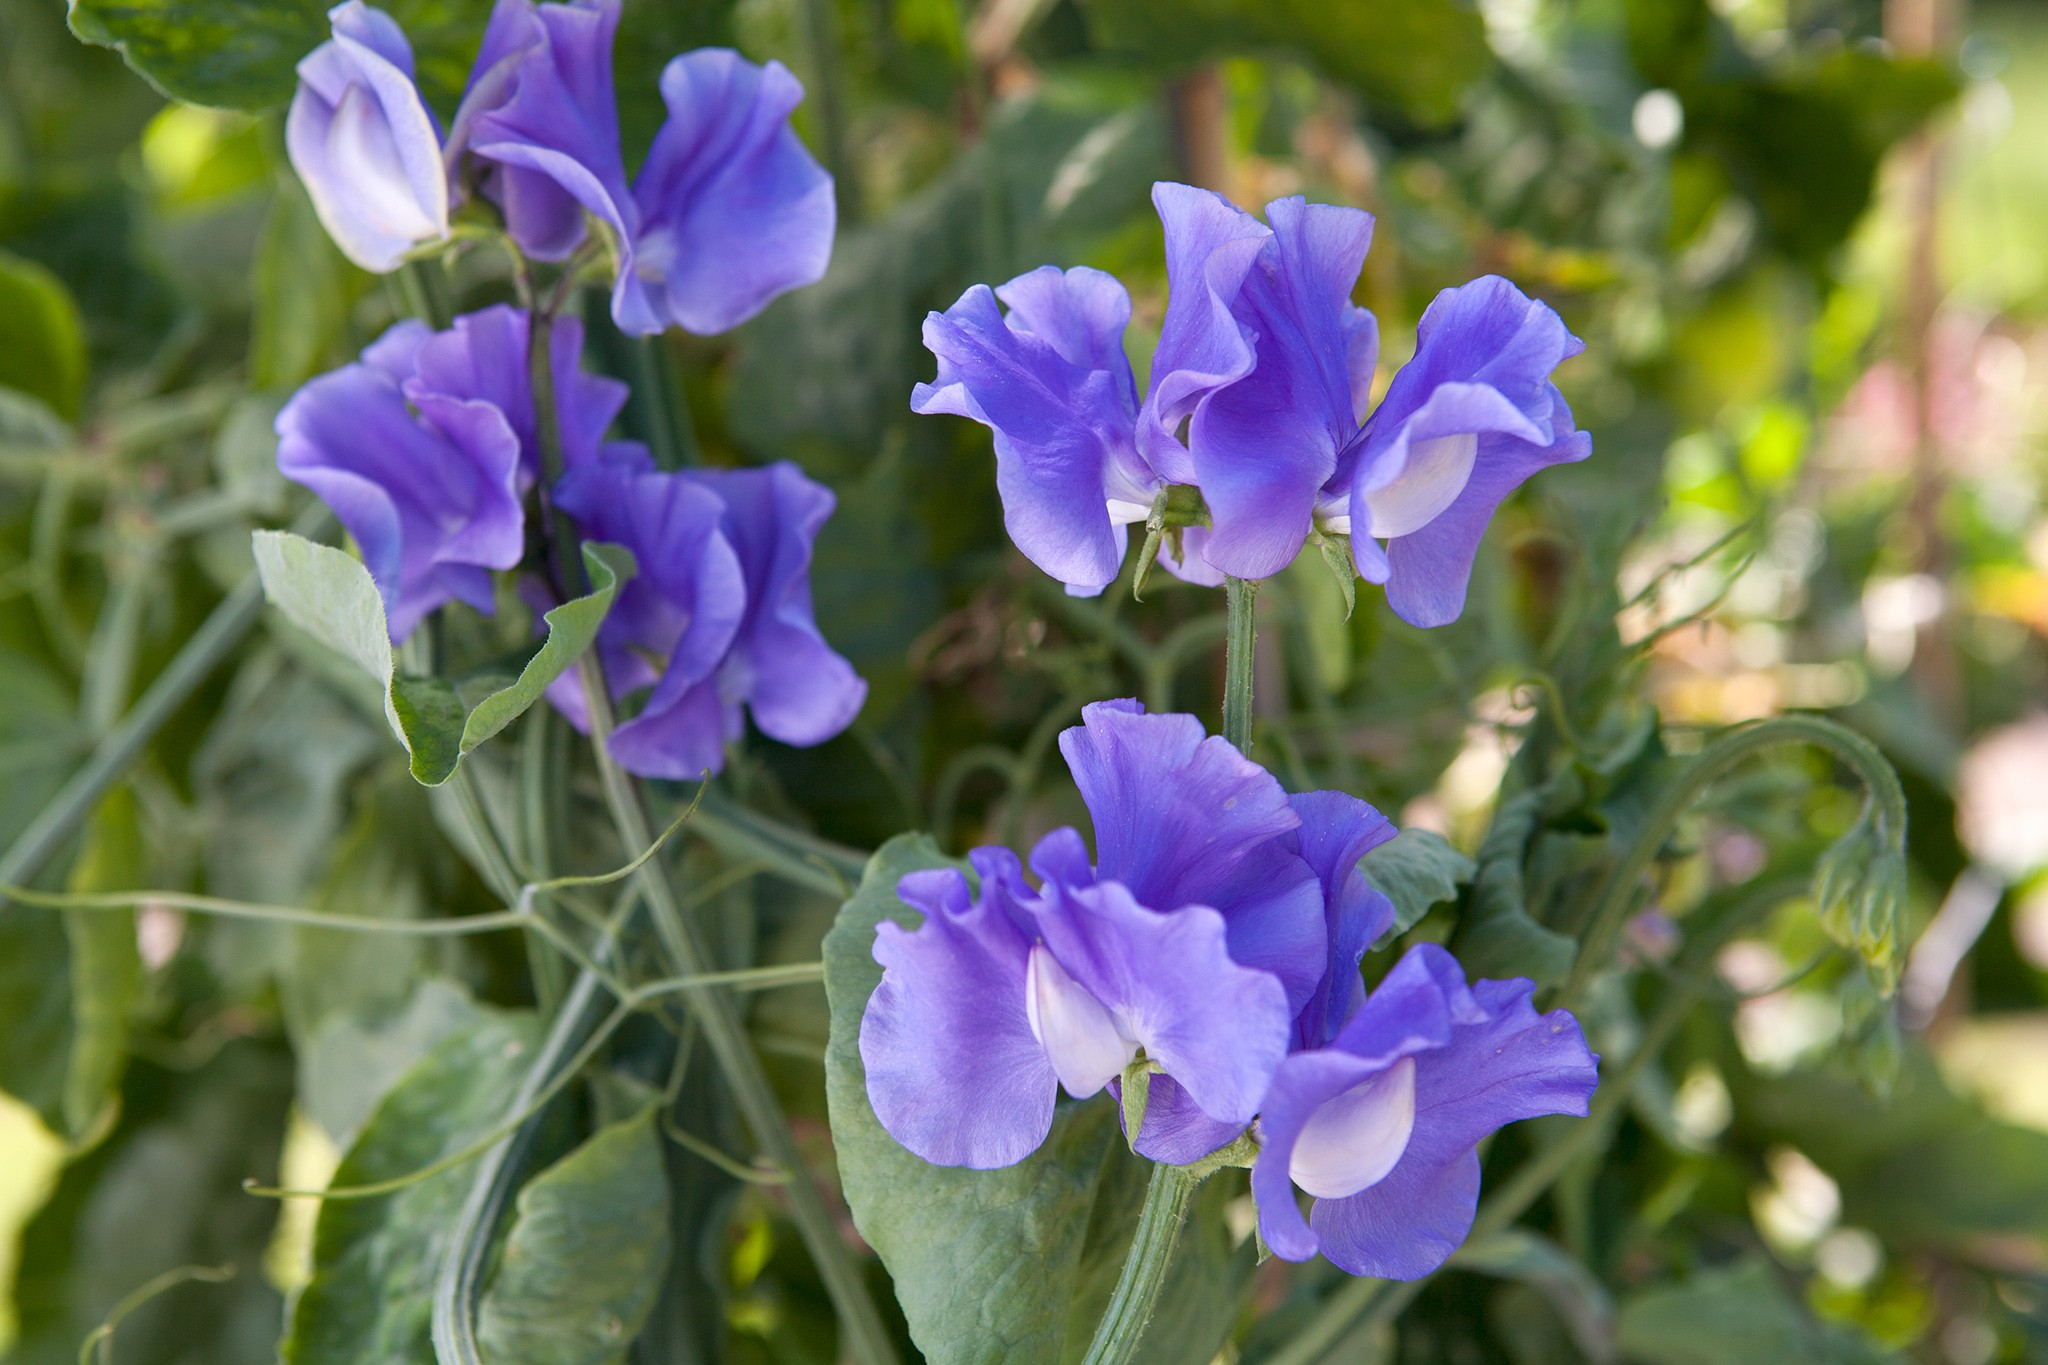 Best Sweet Peas for Cut Flowers